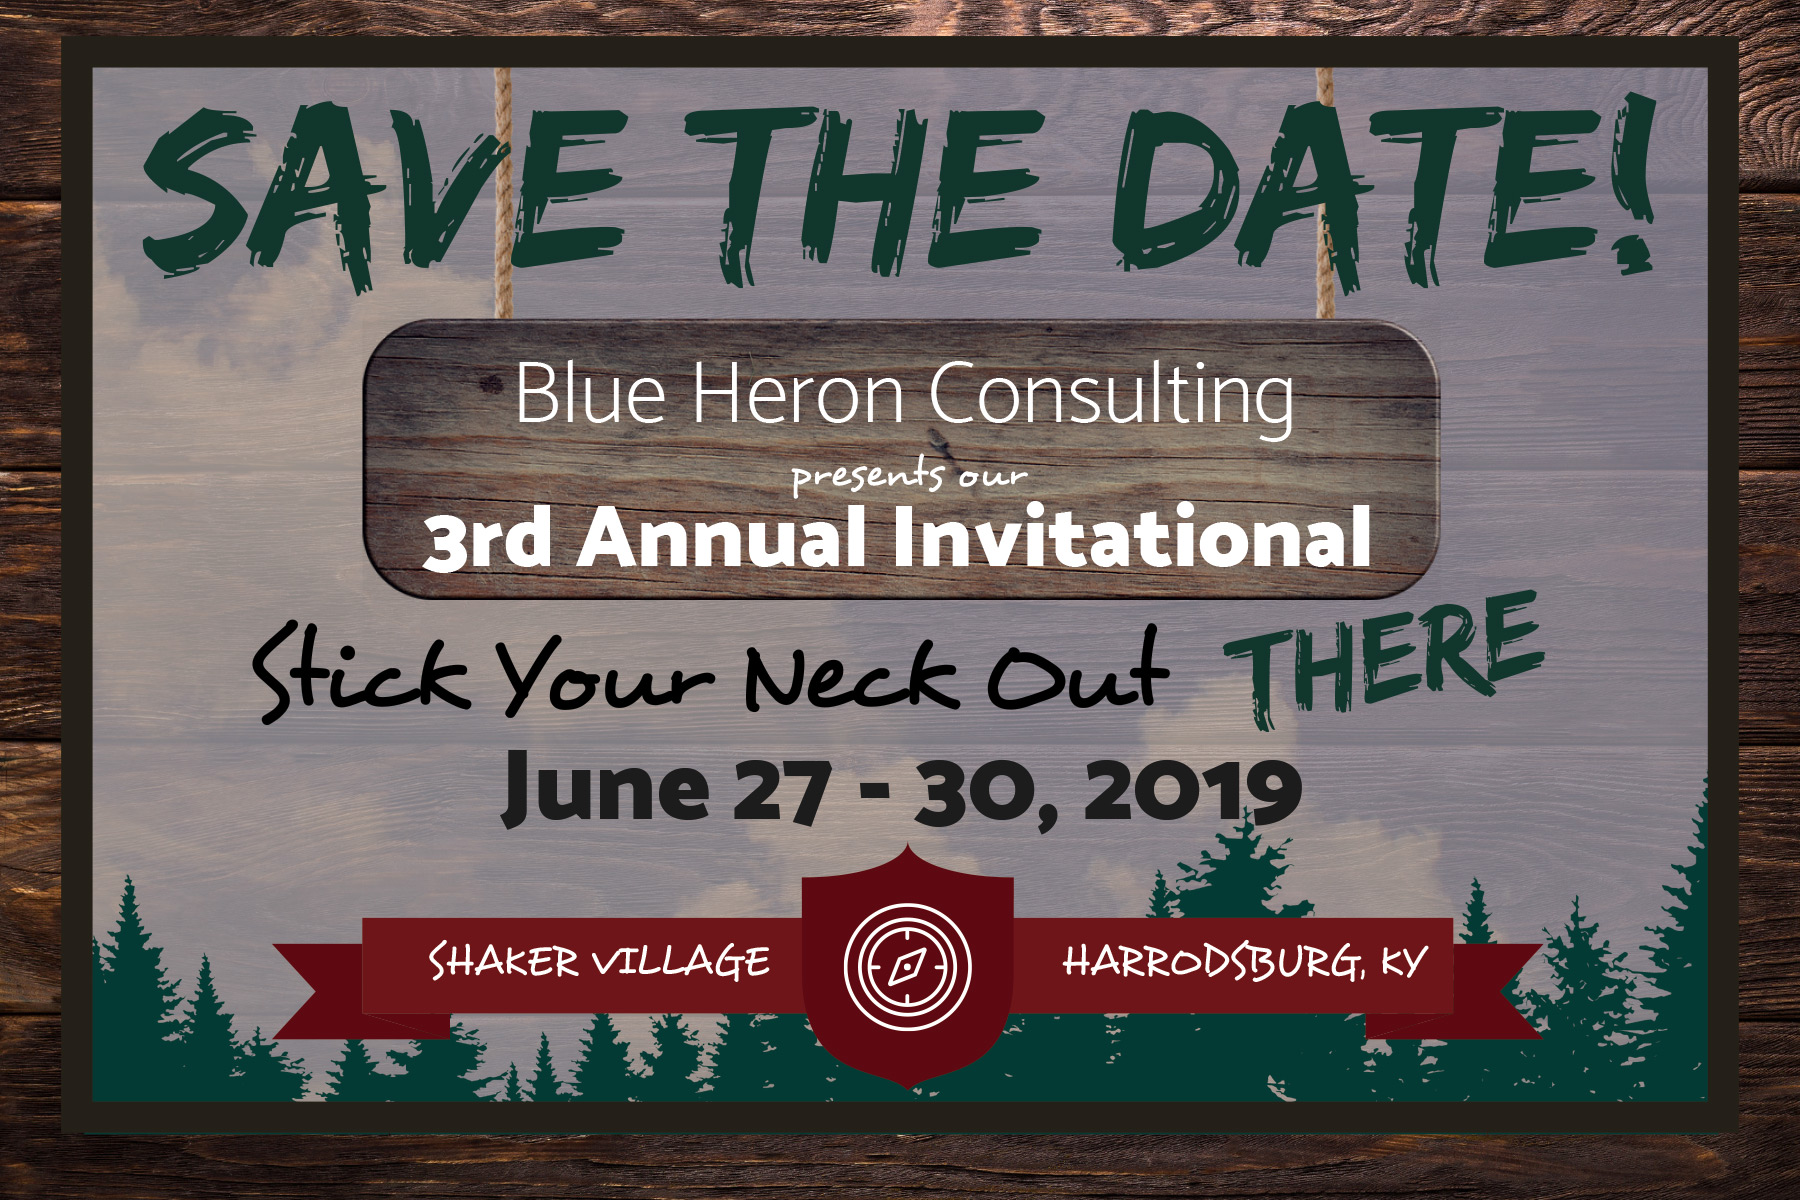 Save the Date! BHC presents 3rd Annual Invitational